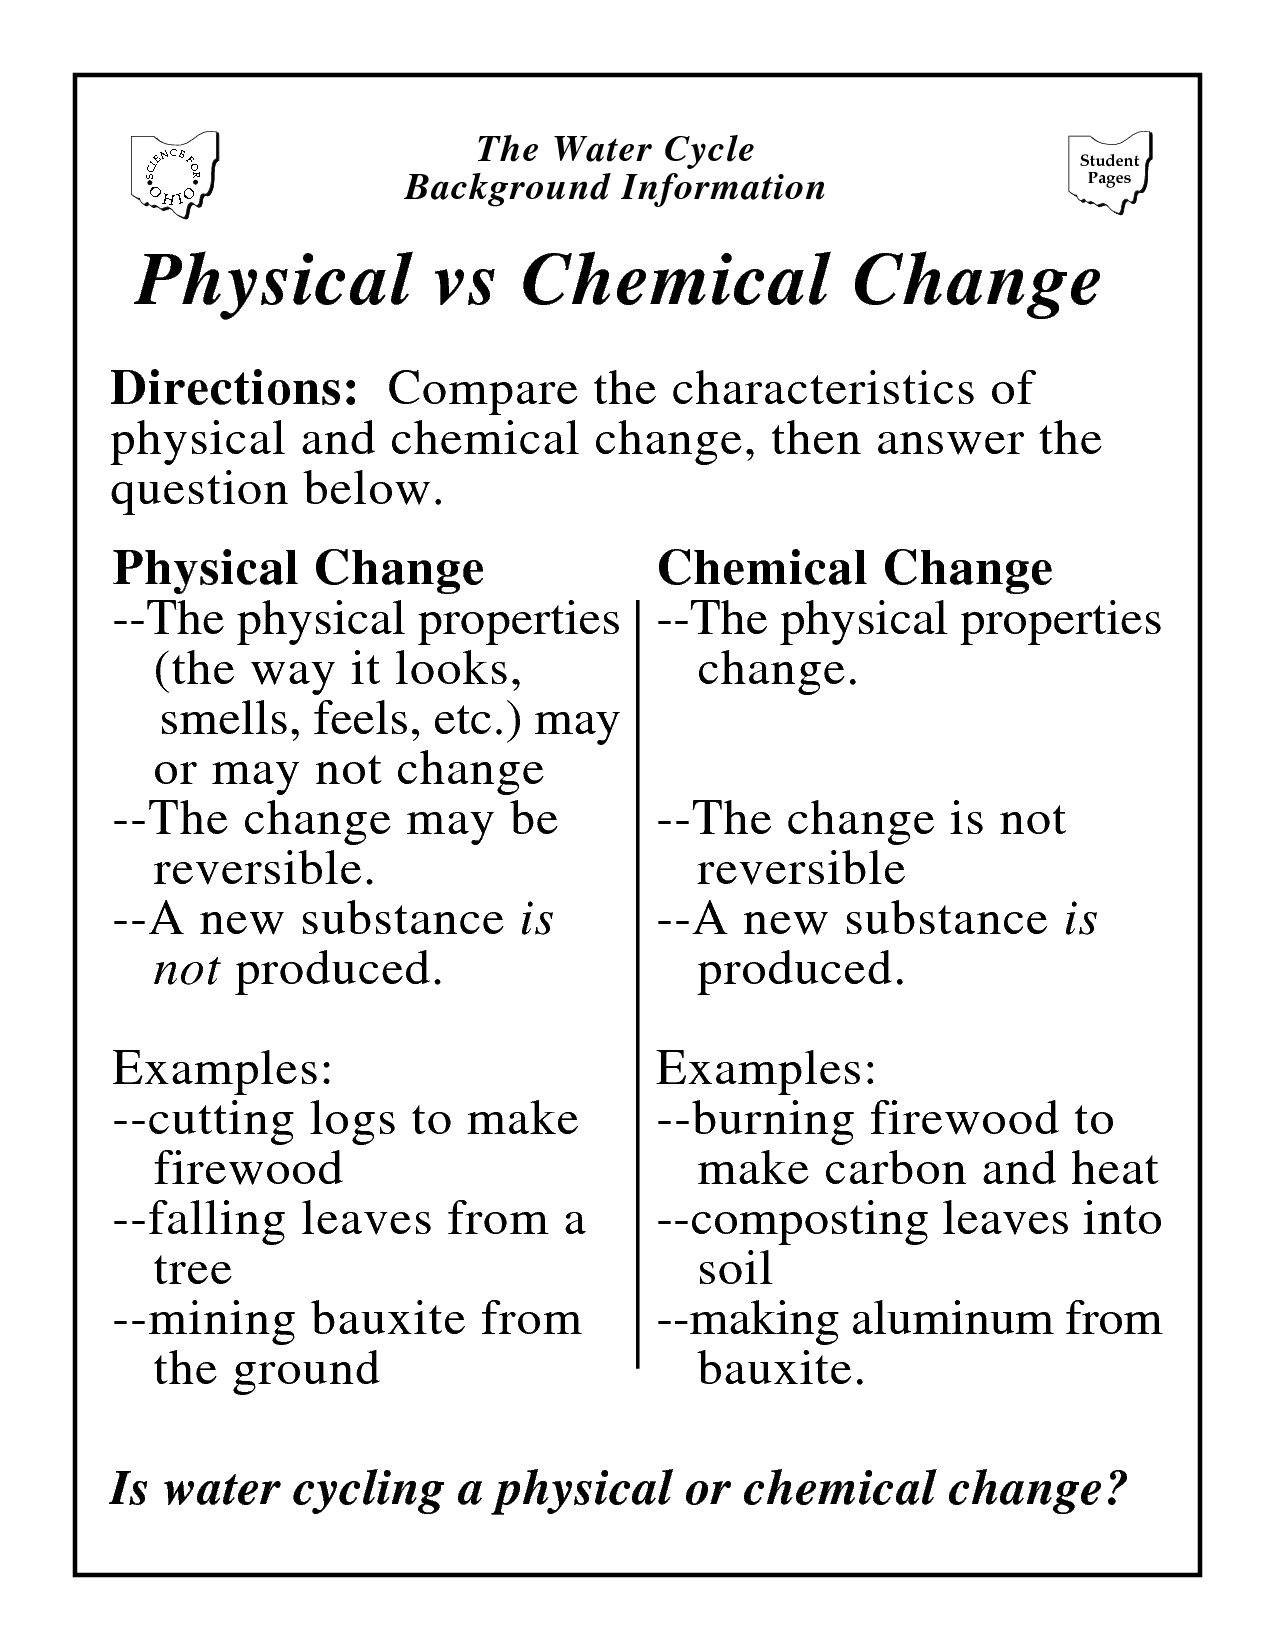 Worksheets Physical And Chemical Changes Worksheet uncategorized worksheets on physical and chemical changes vs change worksheet for school motorobilia